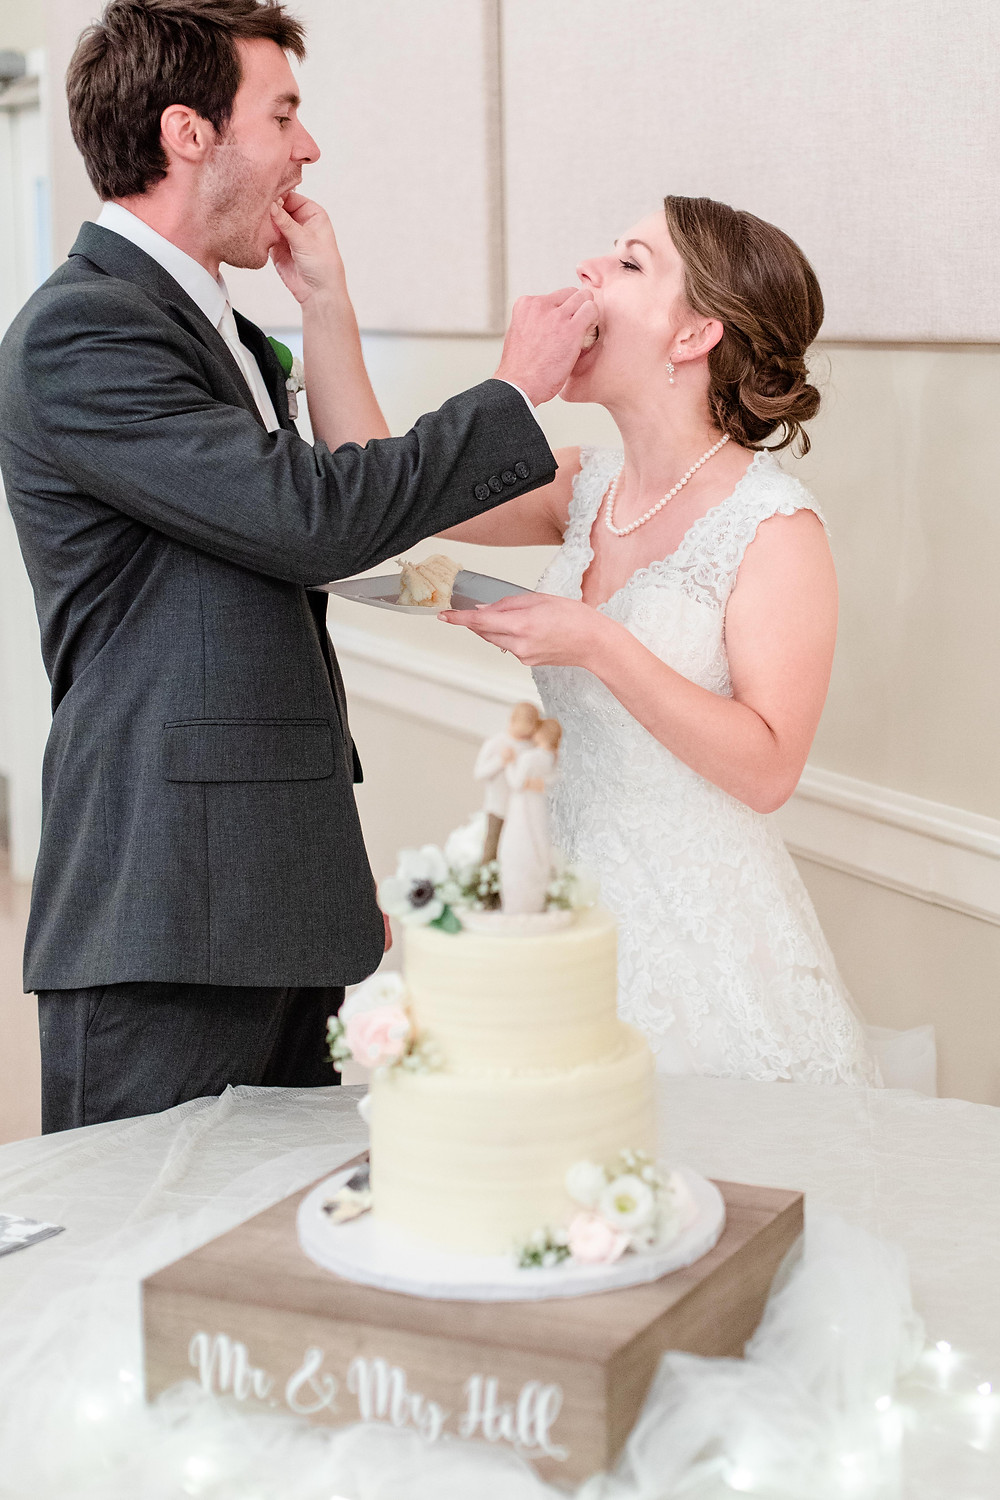 bride and groom cutting cake Milledgeville Georgia